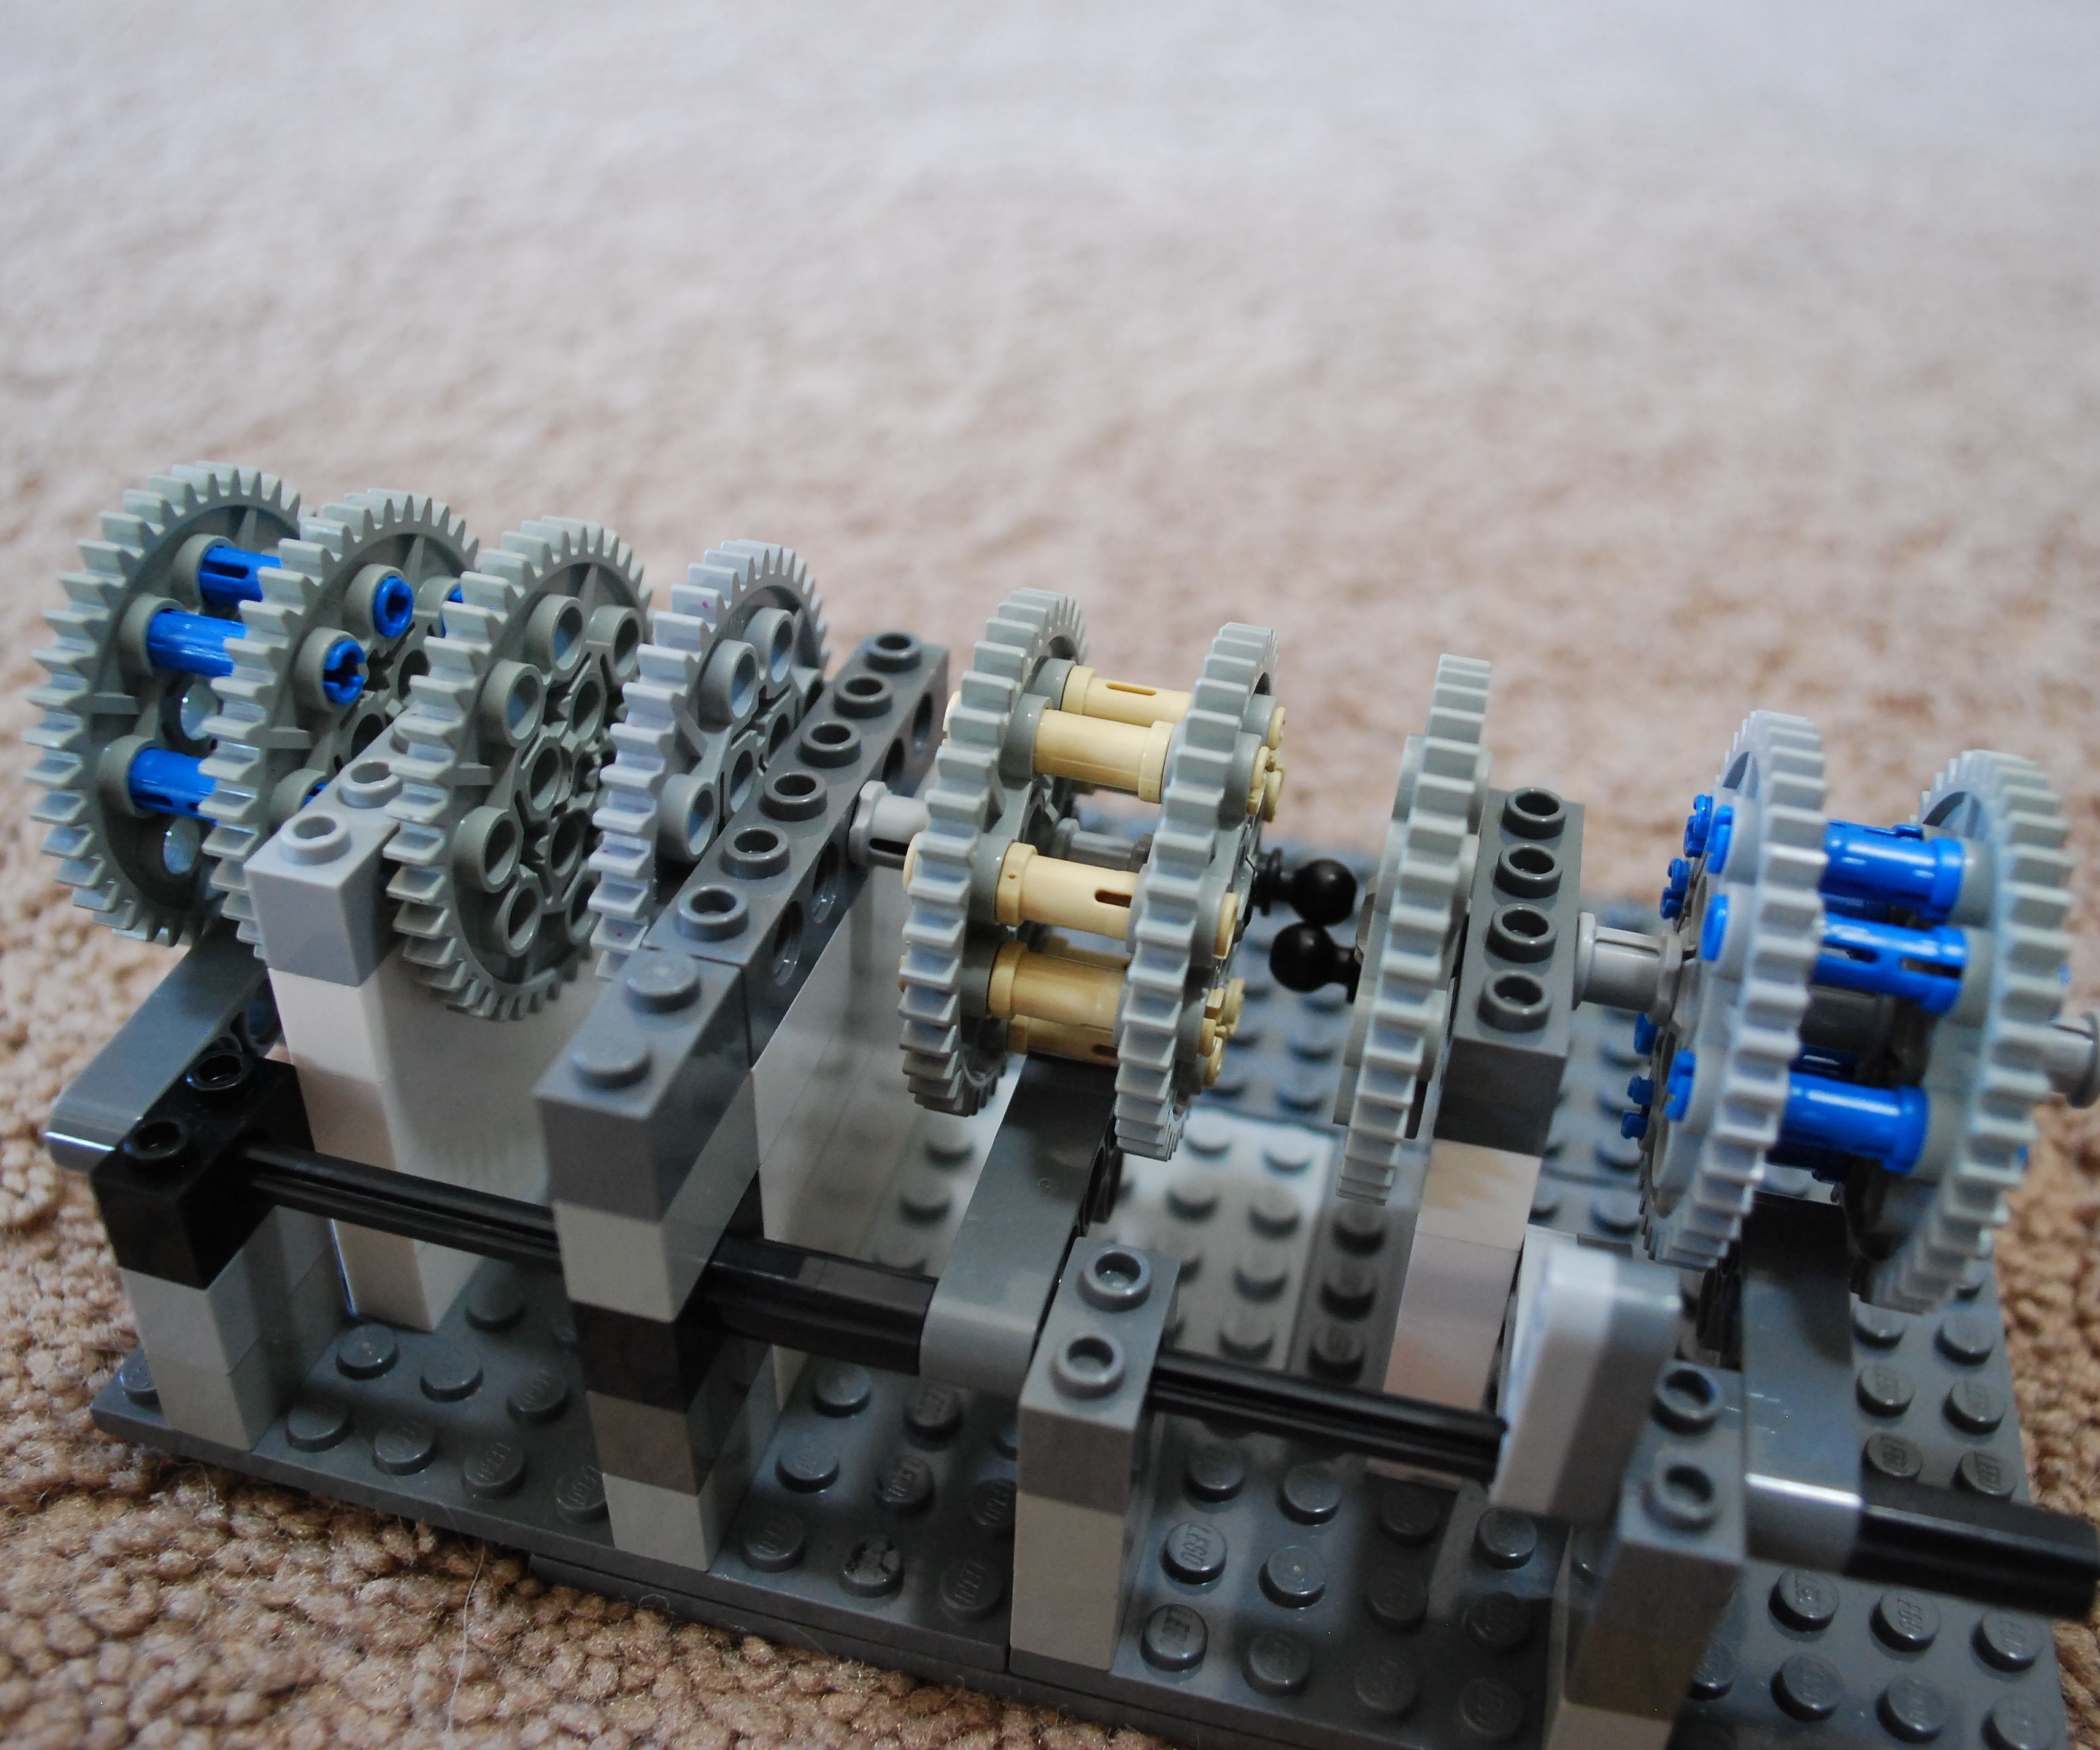 Lego Combination Lock Tutorial